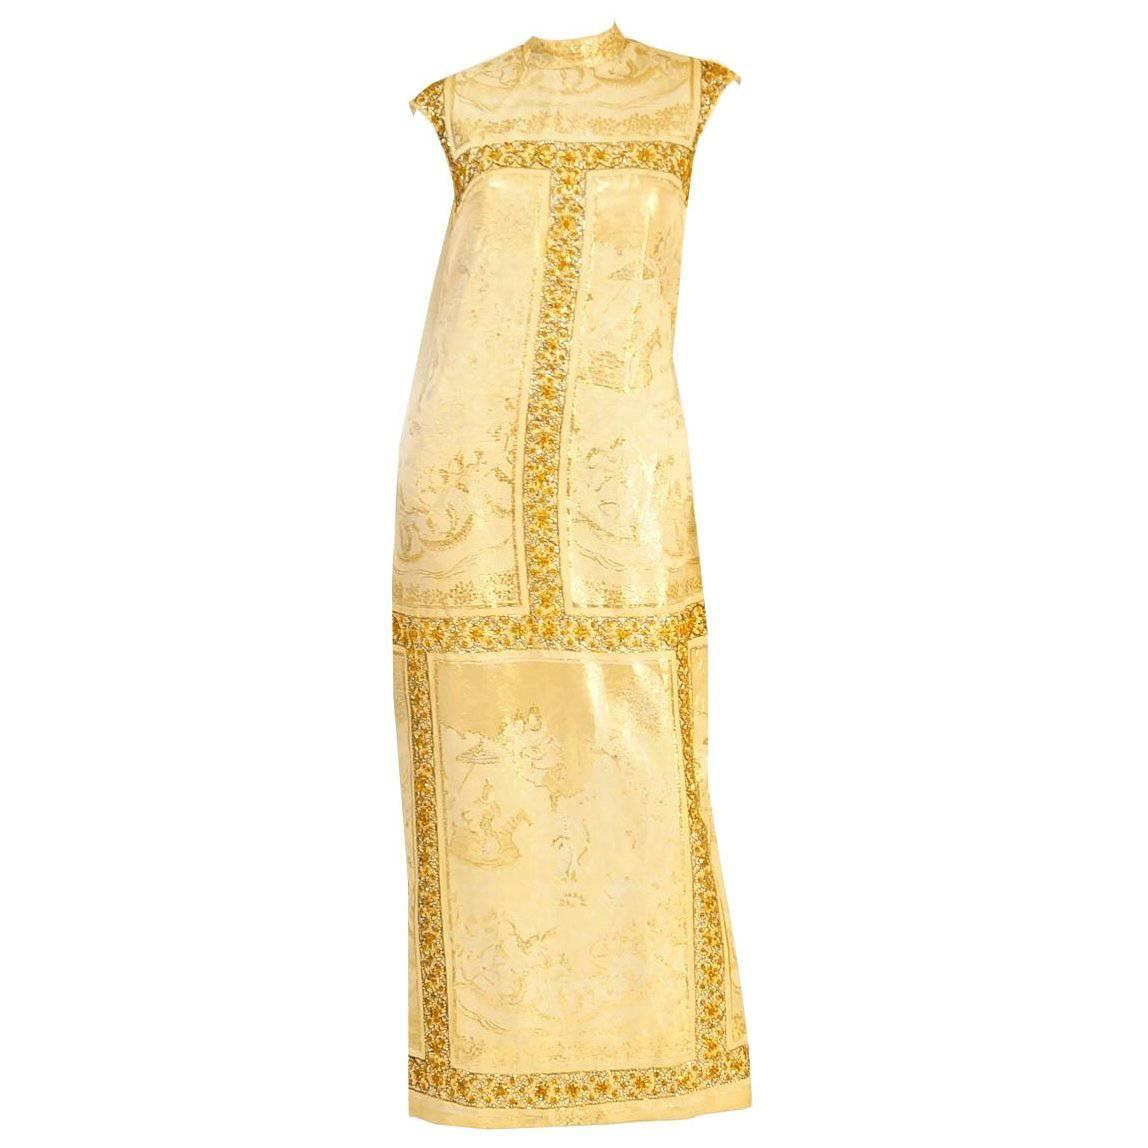 Asian Print Gold Lame Brocade Gown, 1960s